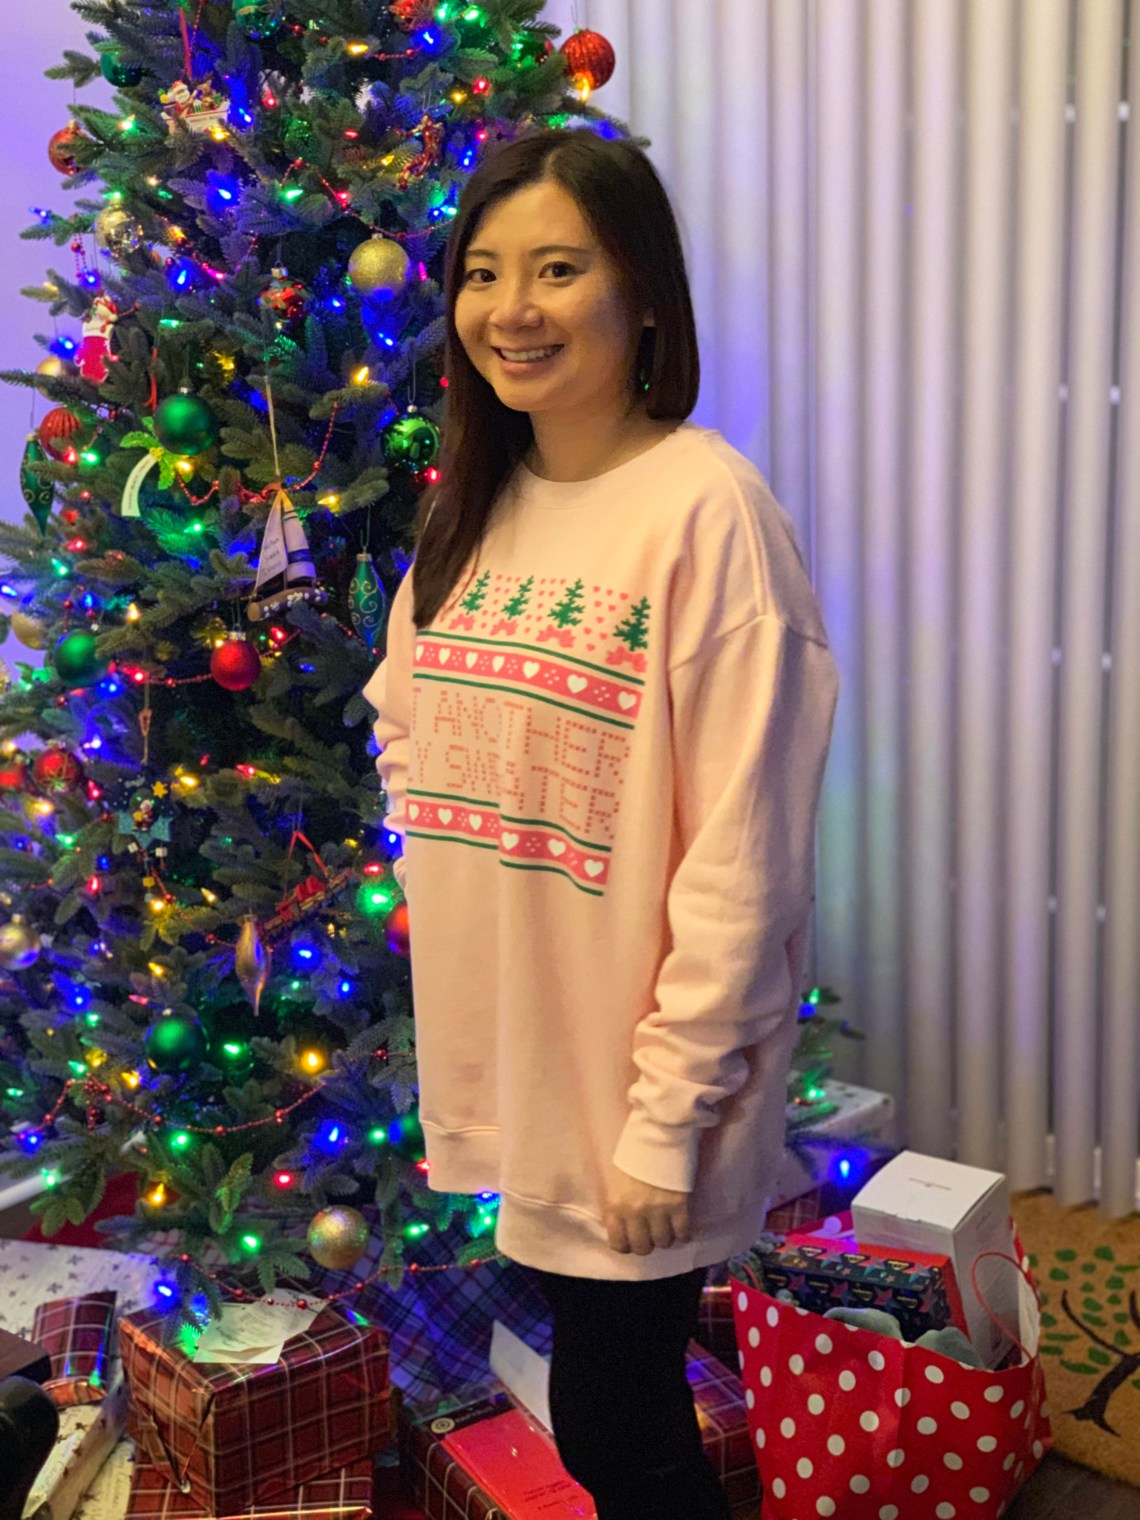 Not Another Ugly Sweater